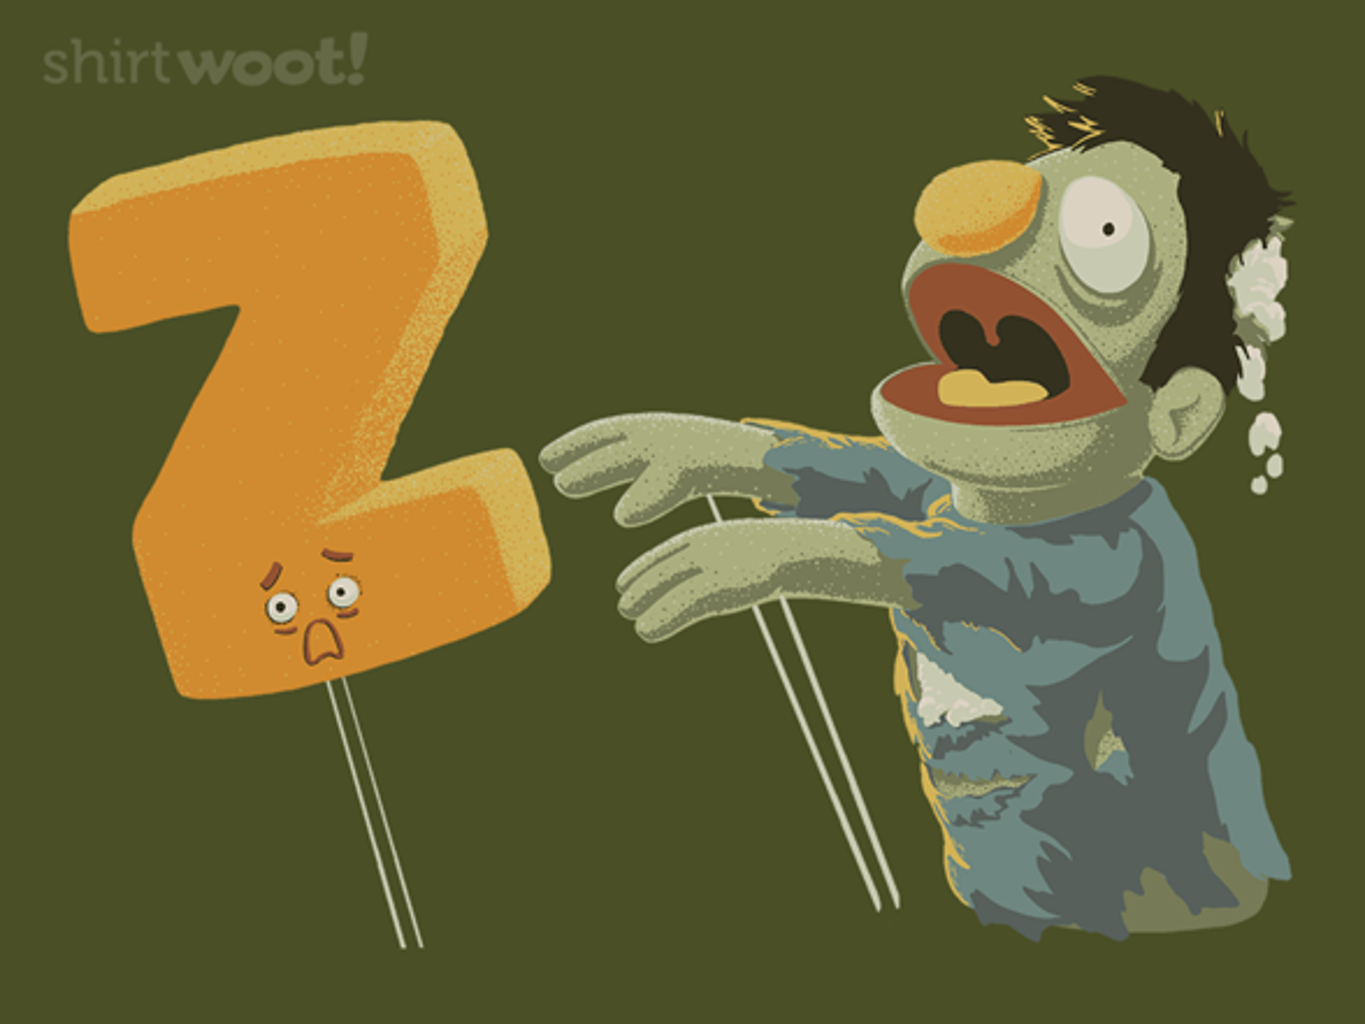 Woot!: Z is for Zombie